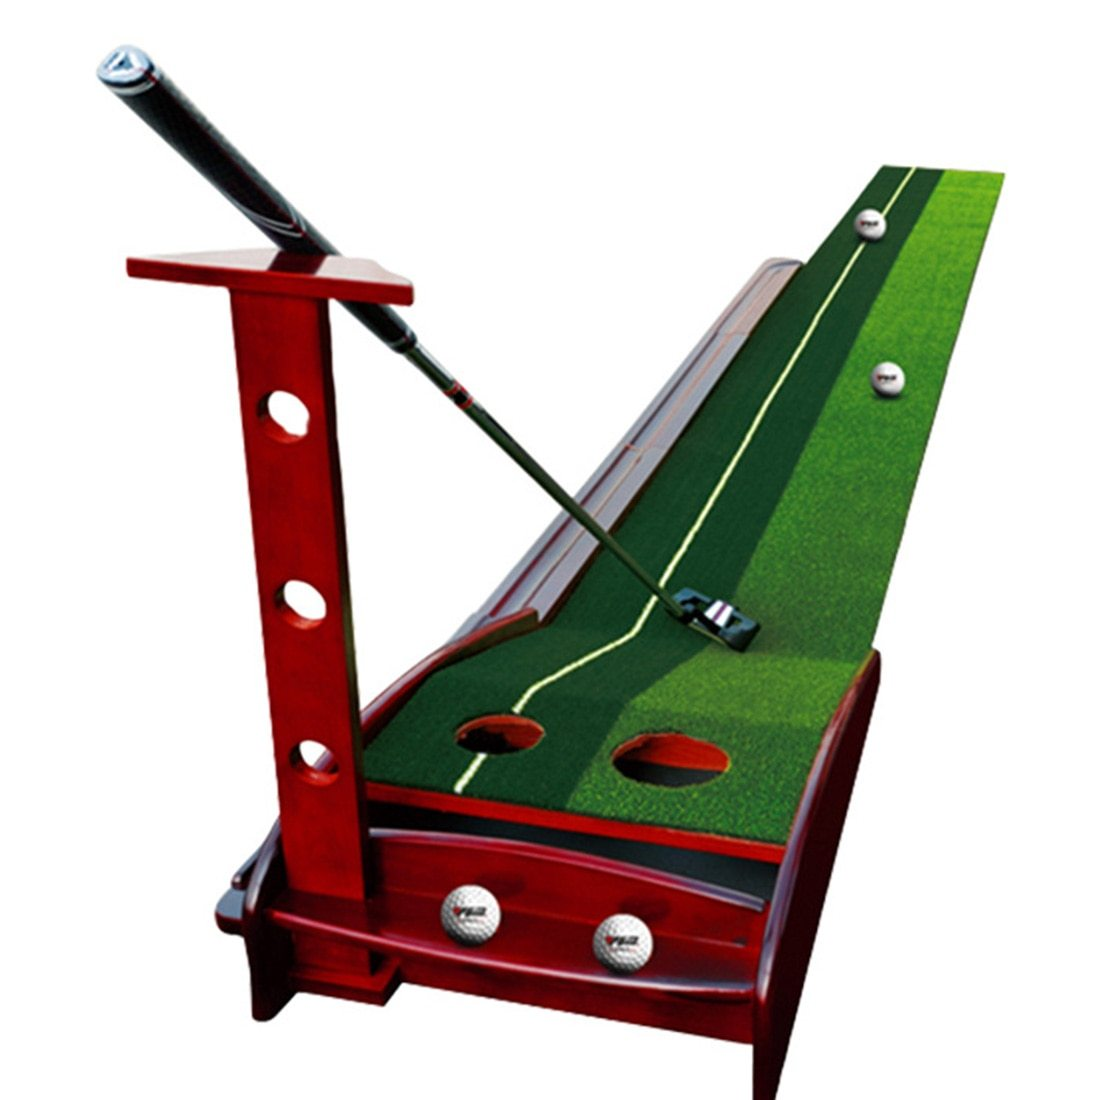 Wooden Indoor Putting Green - Golf Putting Practice - The Golfing Eagles